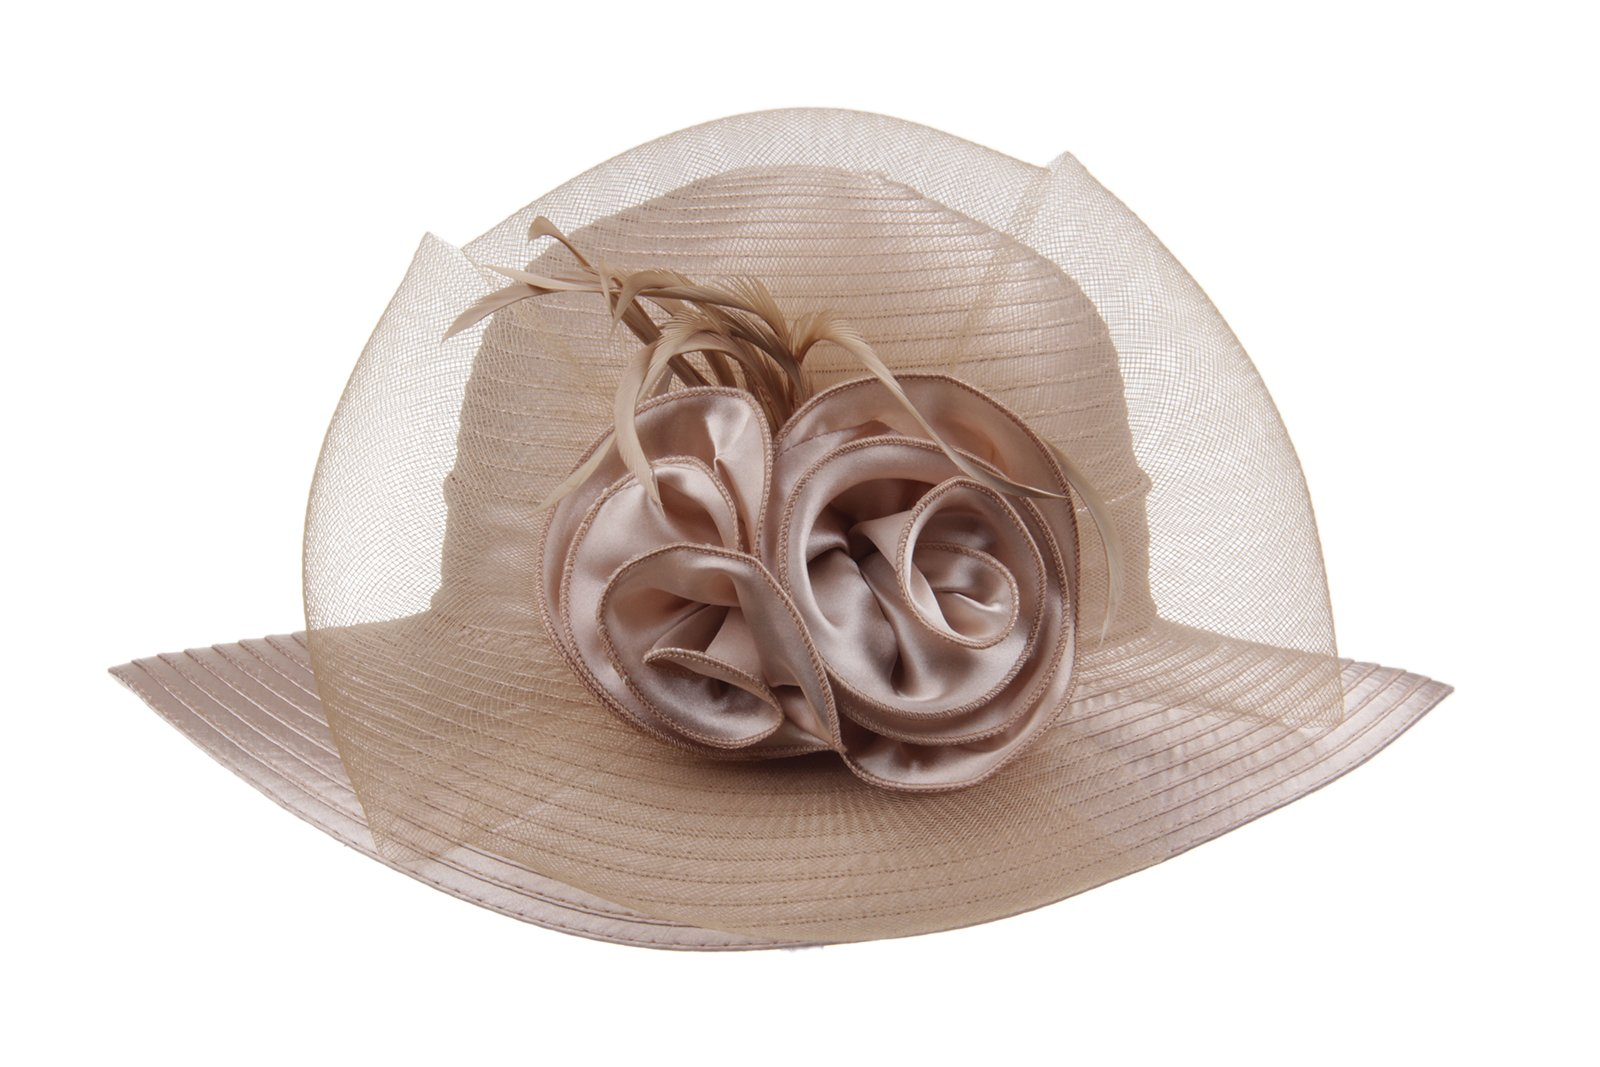 Prefe Lady's Kentucky Derby Dress Church Cloche Hat Bow Bucket Wedding Bowler Hats (Champagne, One Size)